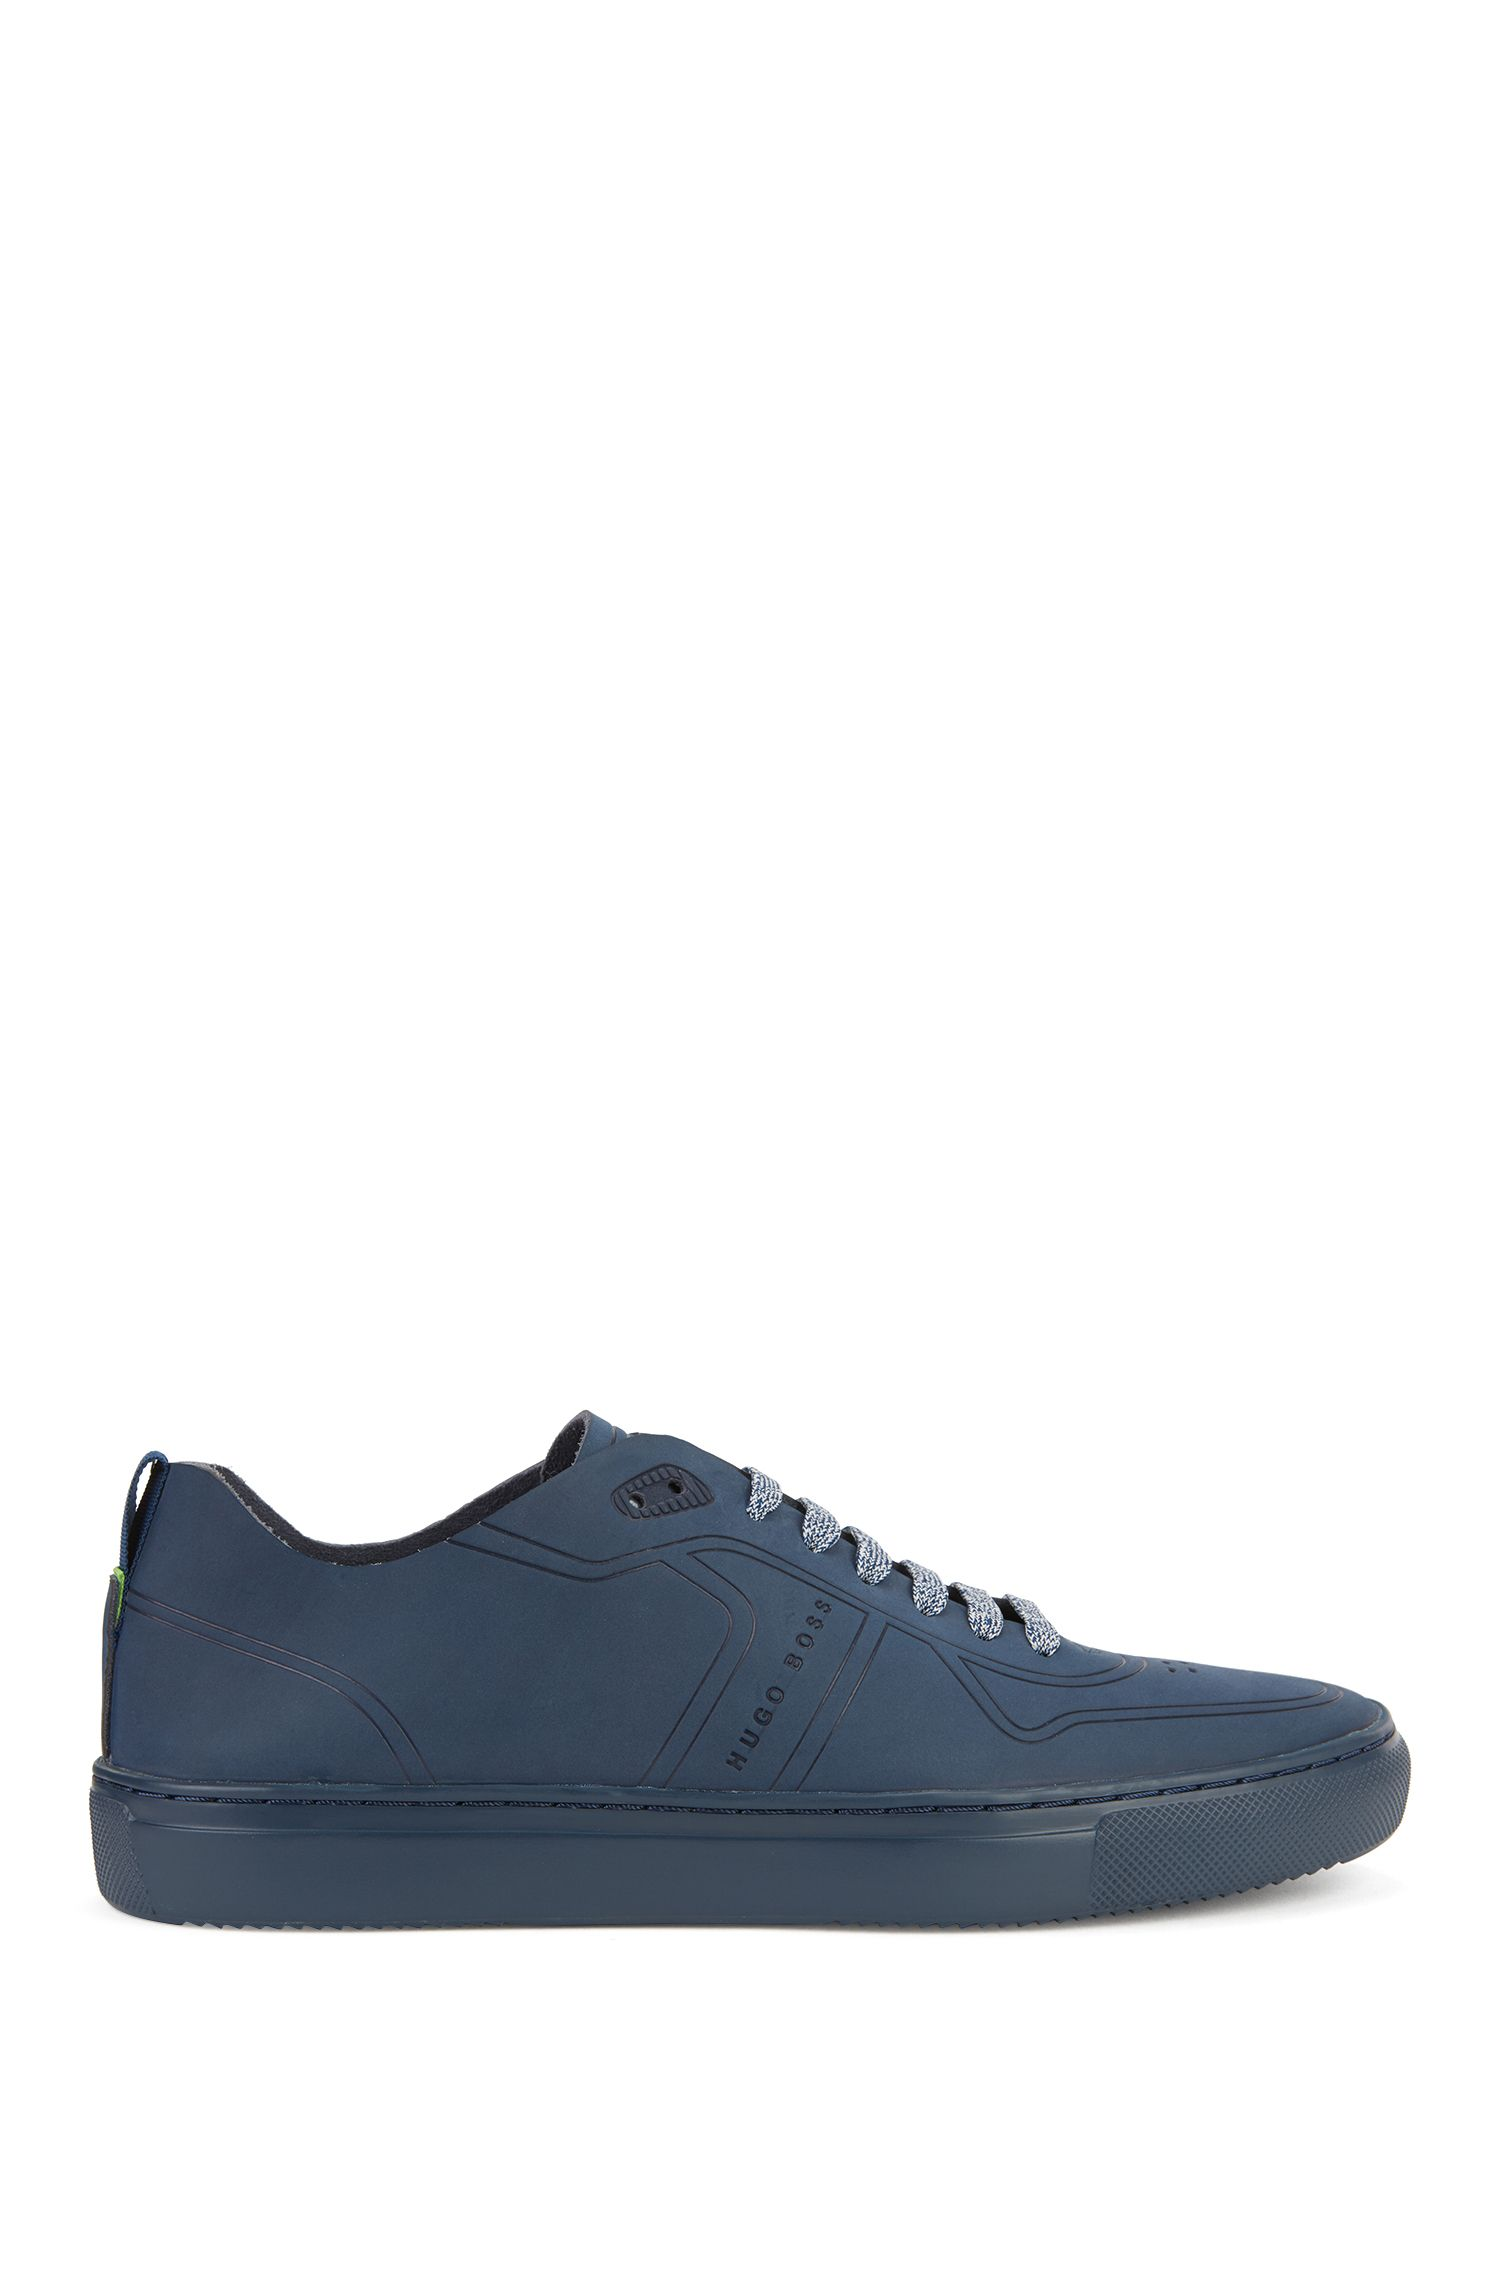 Sneakers low-top stile tennis in nabuk